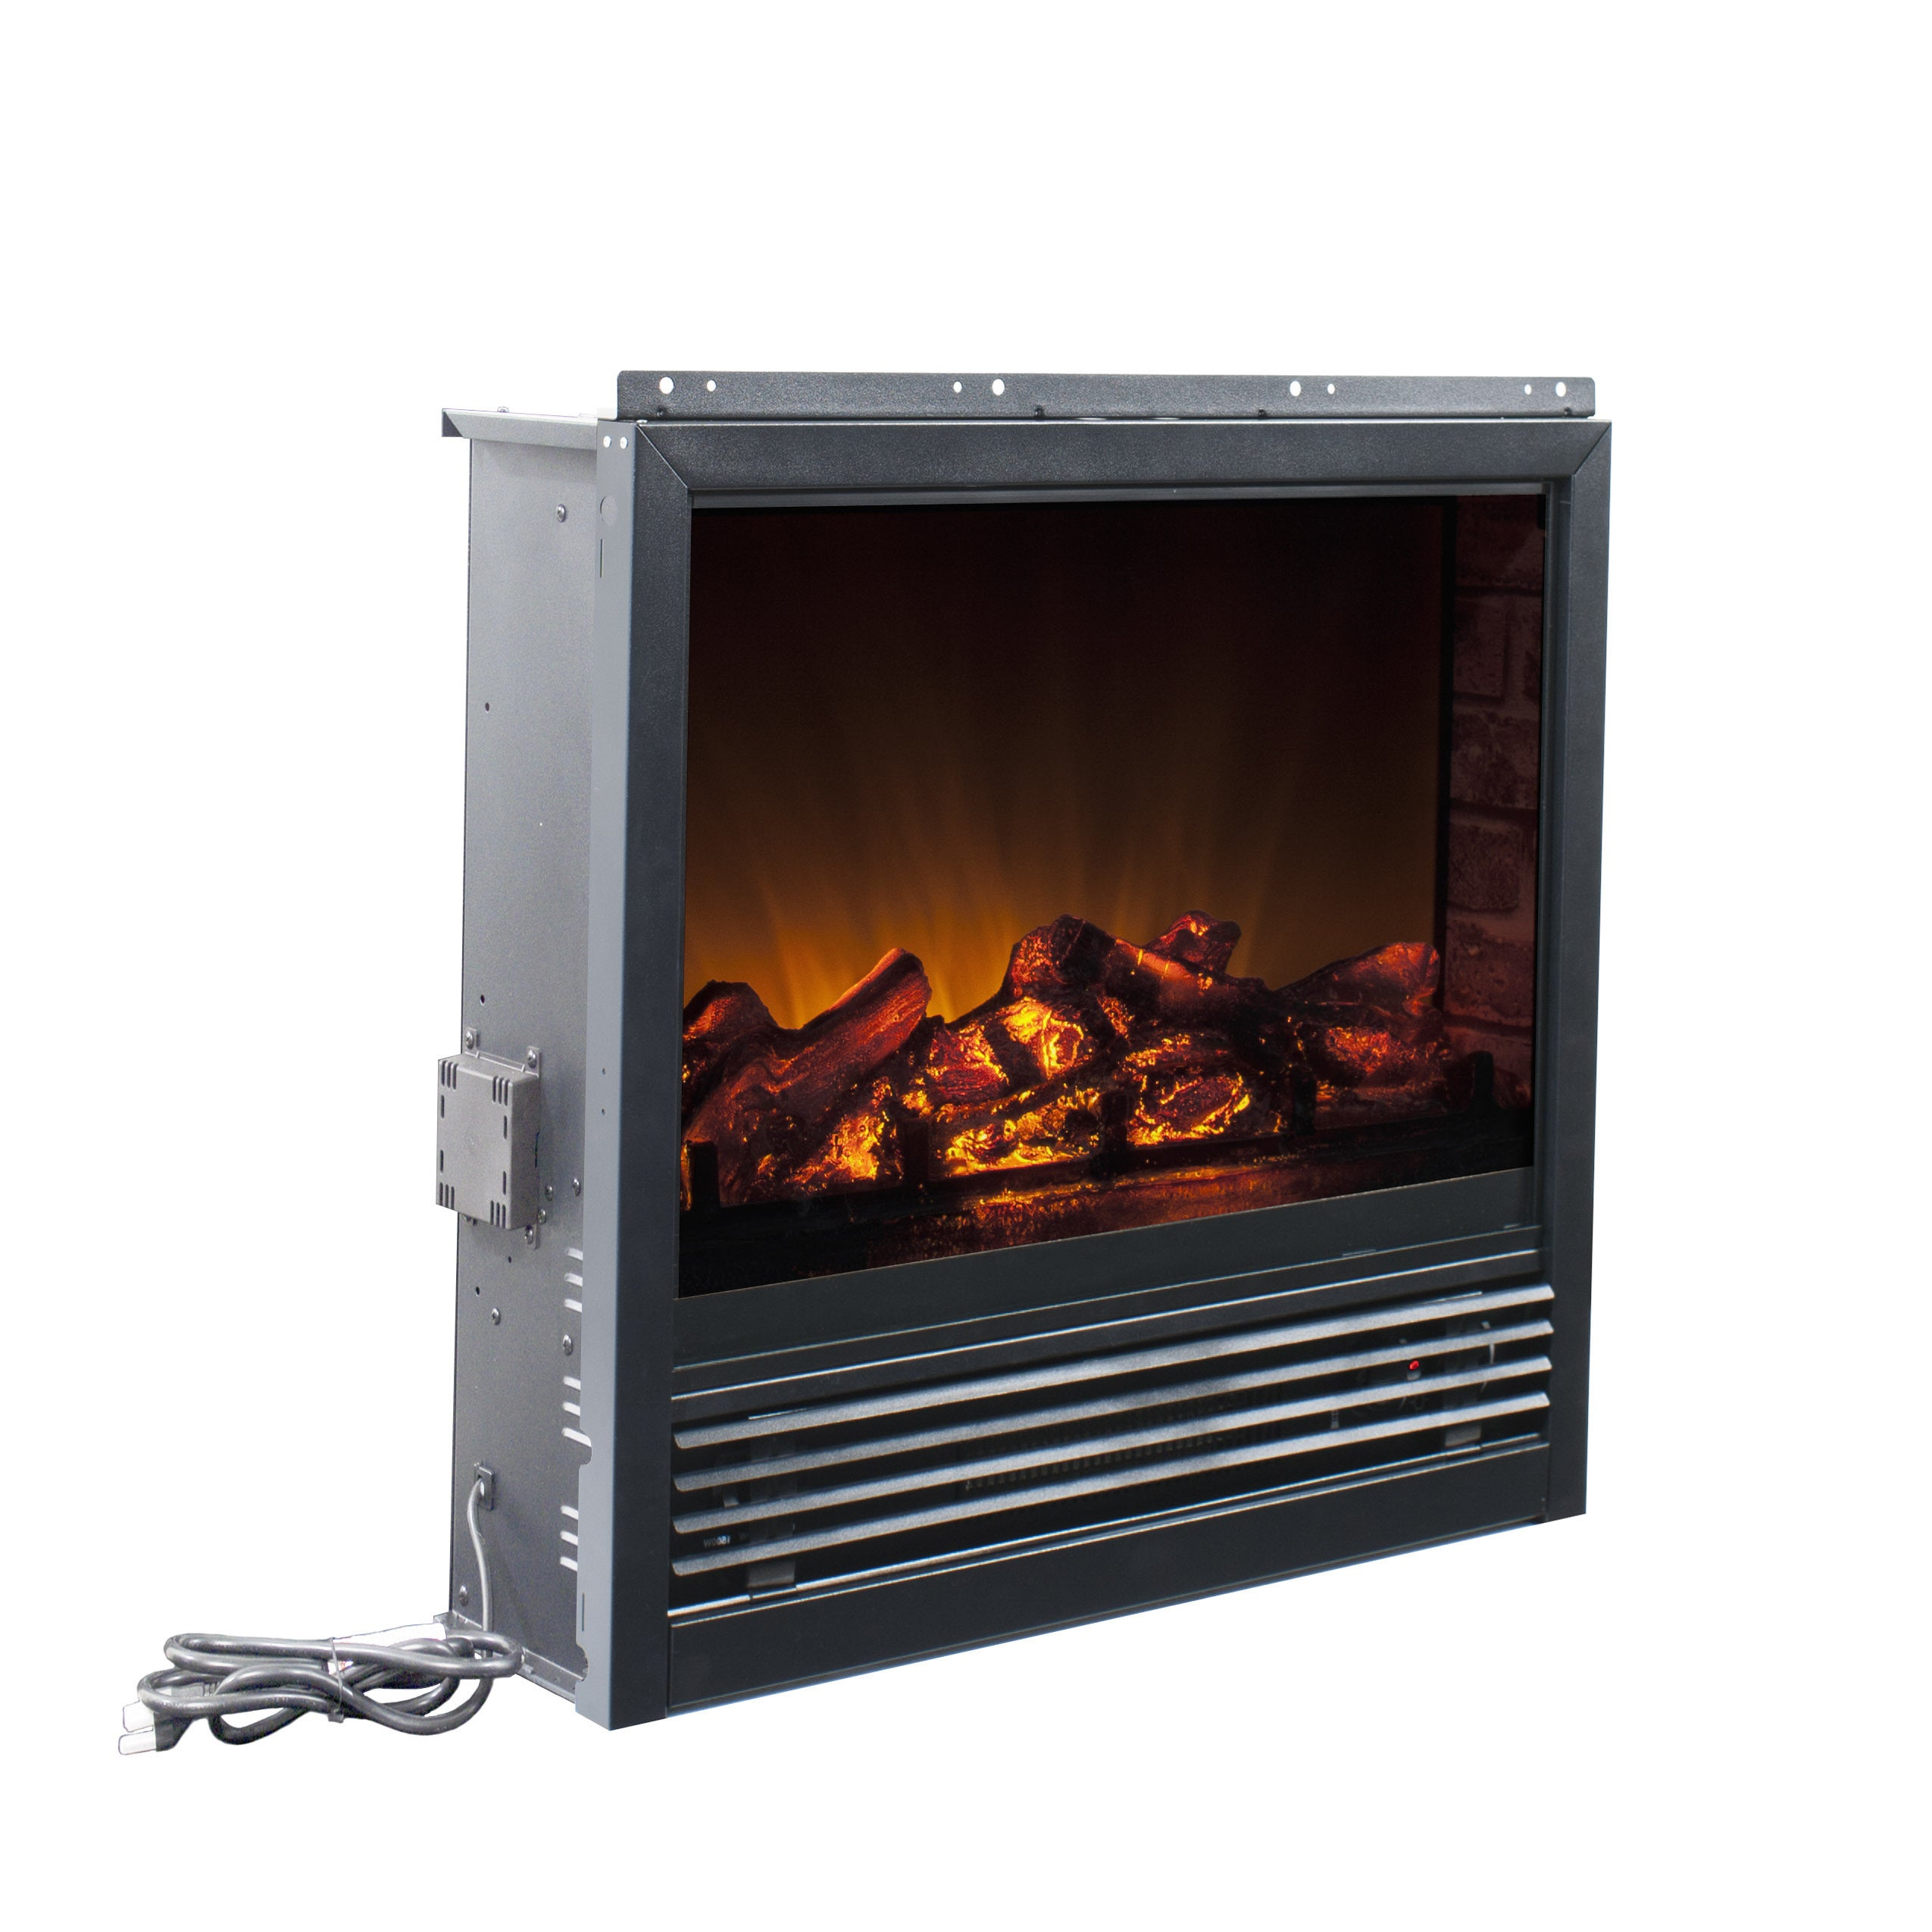 CorLiving FPE-591-F Electric Fireplace Insert at Sears.com